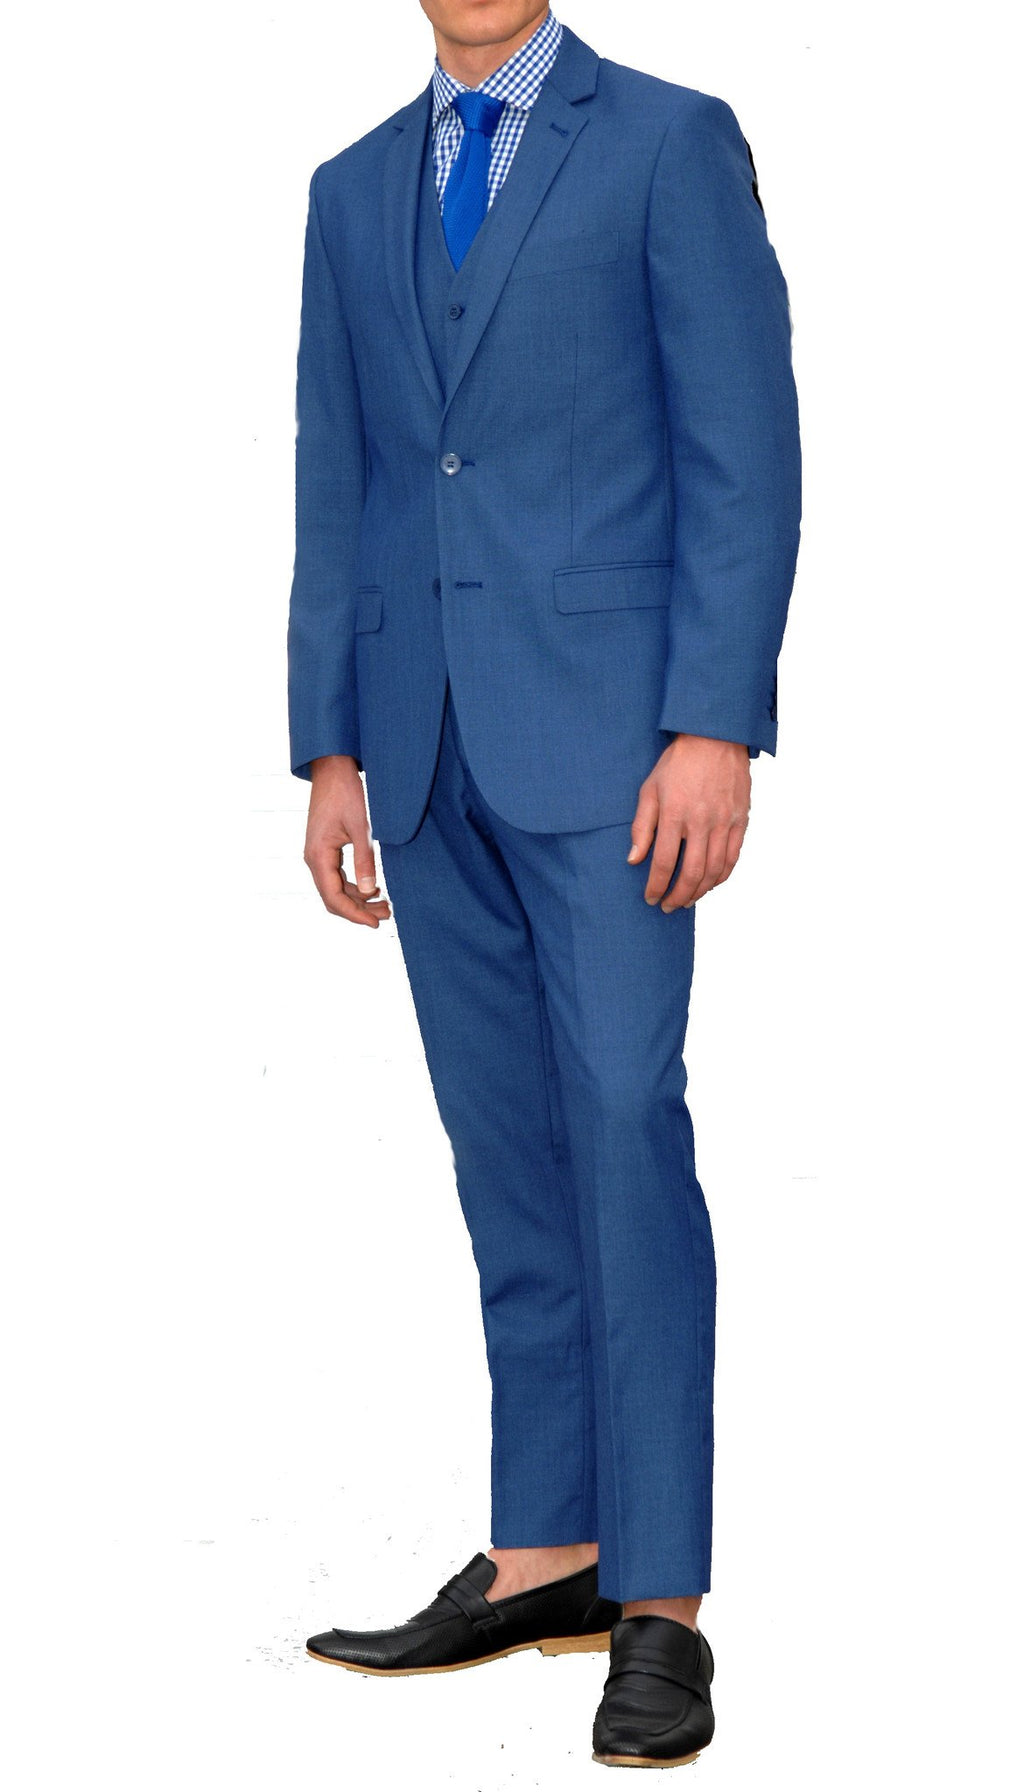 New Blue Slim Fit Suit - 3PC - JAX - Giorgio's Menswear